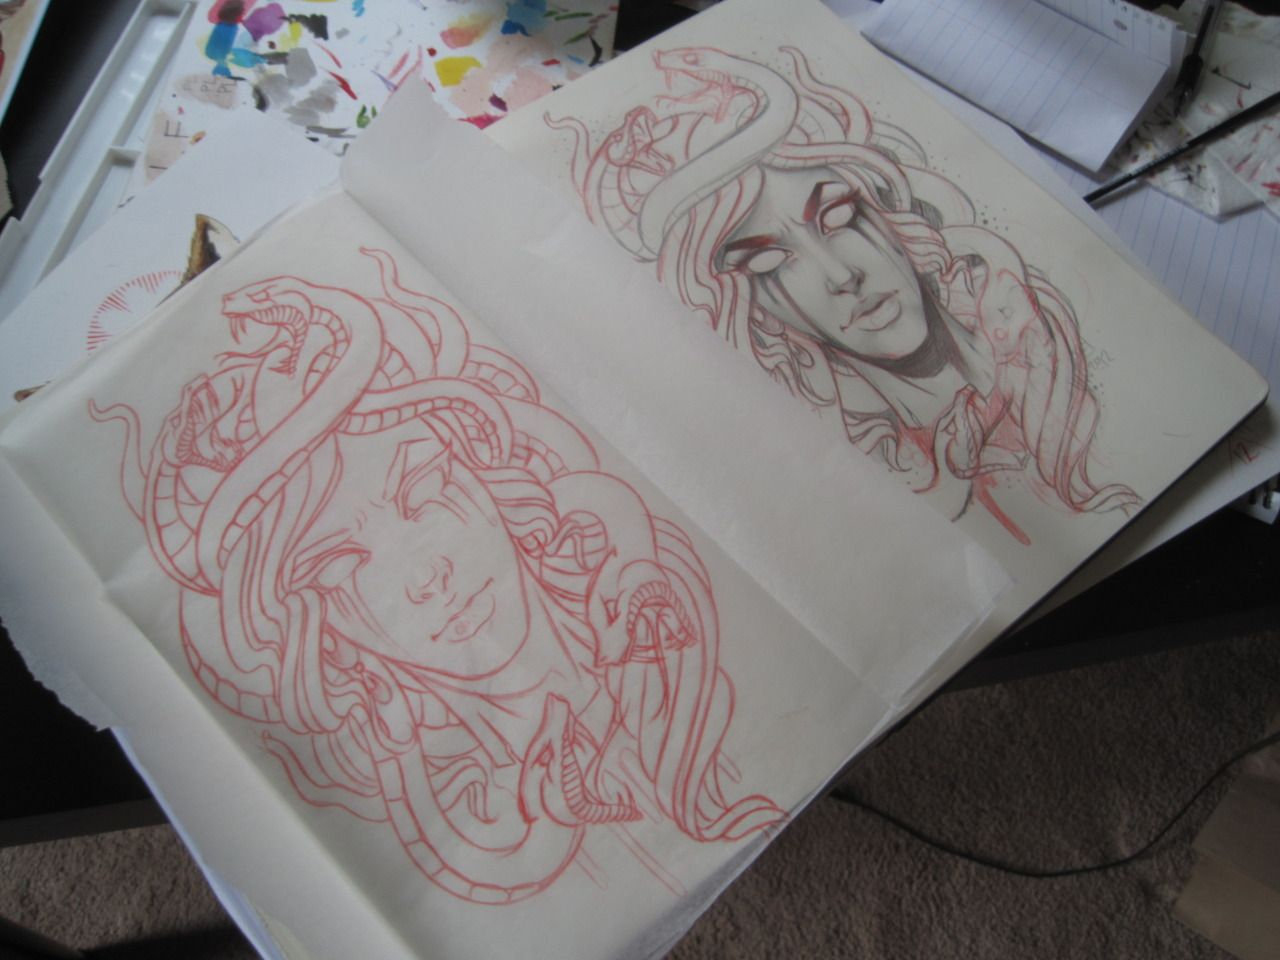 medusa sketch for a tattoo for my homie coworker wade preeeetty excited to tattoo this one. Black Bedroom Furniture Sets. Home Design Ideas